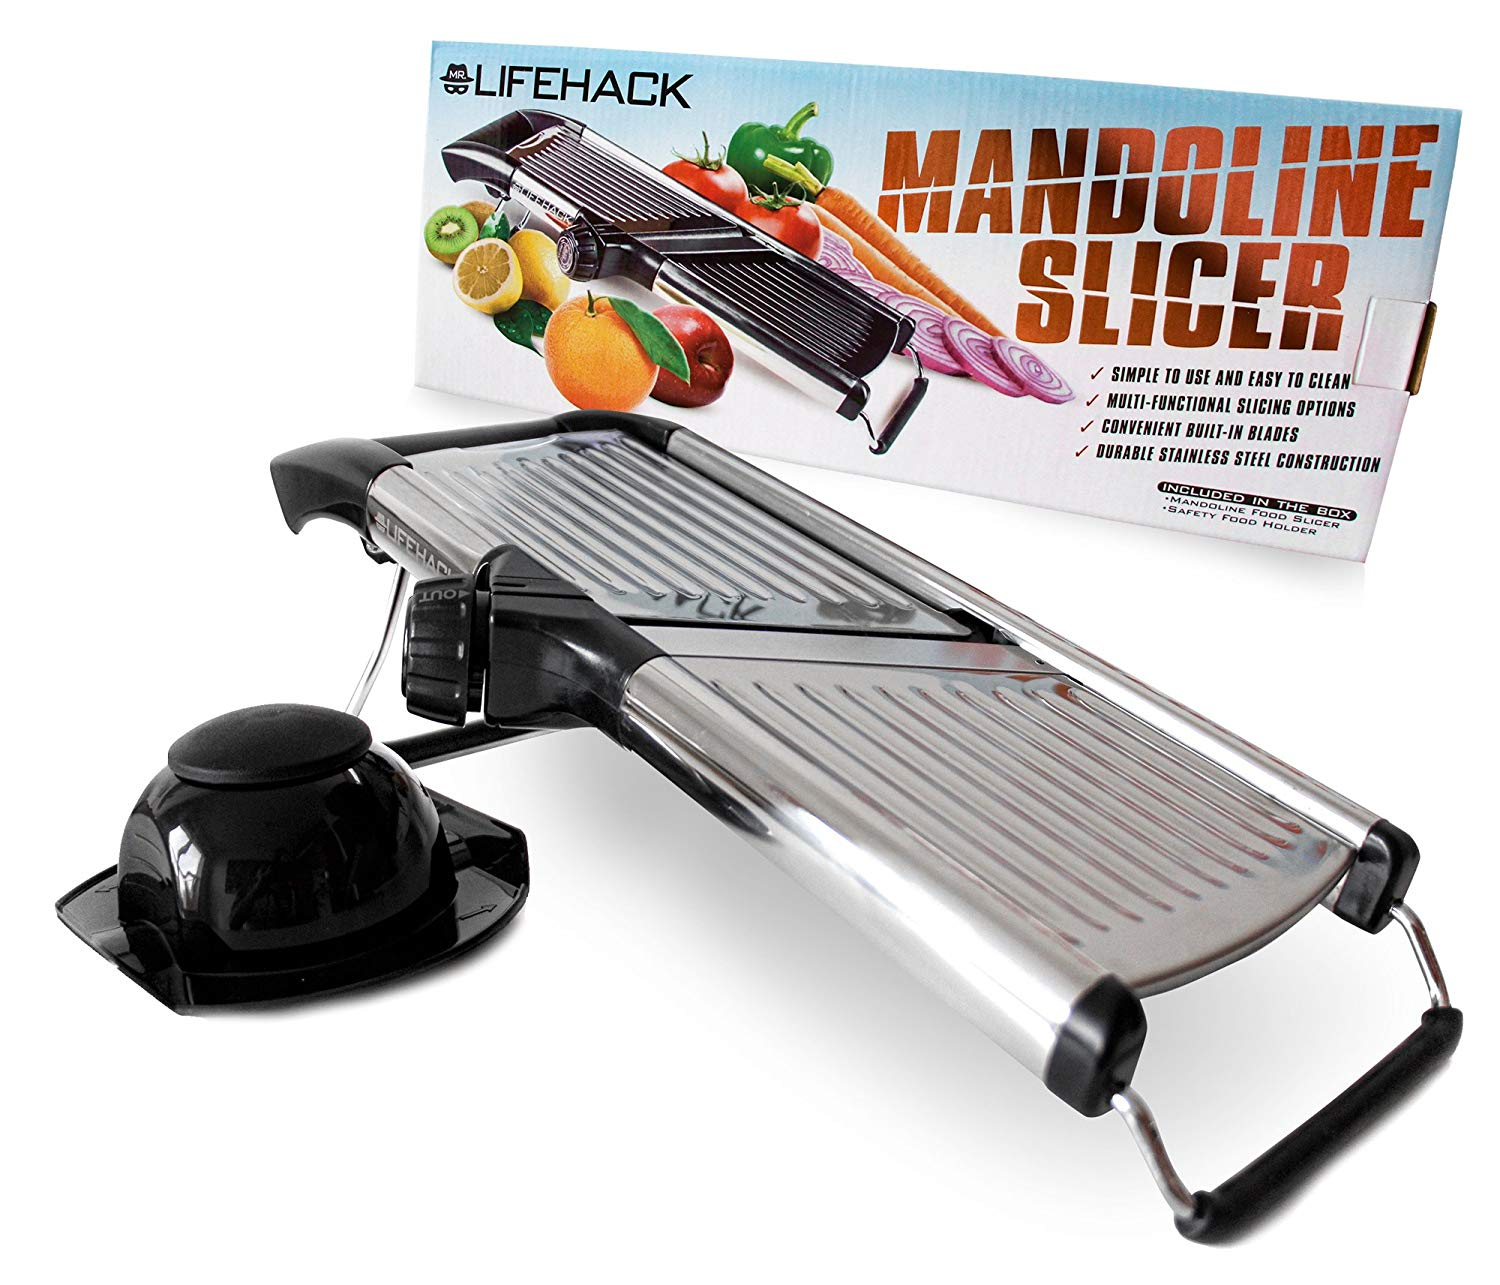 Mandoline Slicer - Stainless Steel Food Slicer With Adjustable Julienne Blade System - Best Fruit, Potato & Vegetable Cutter